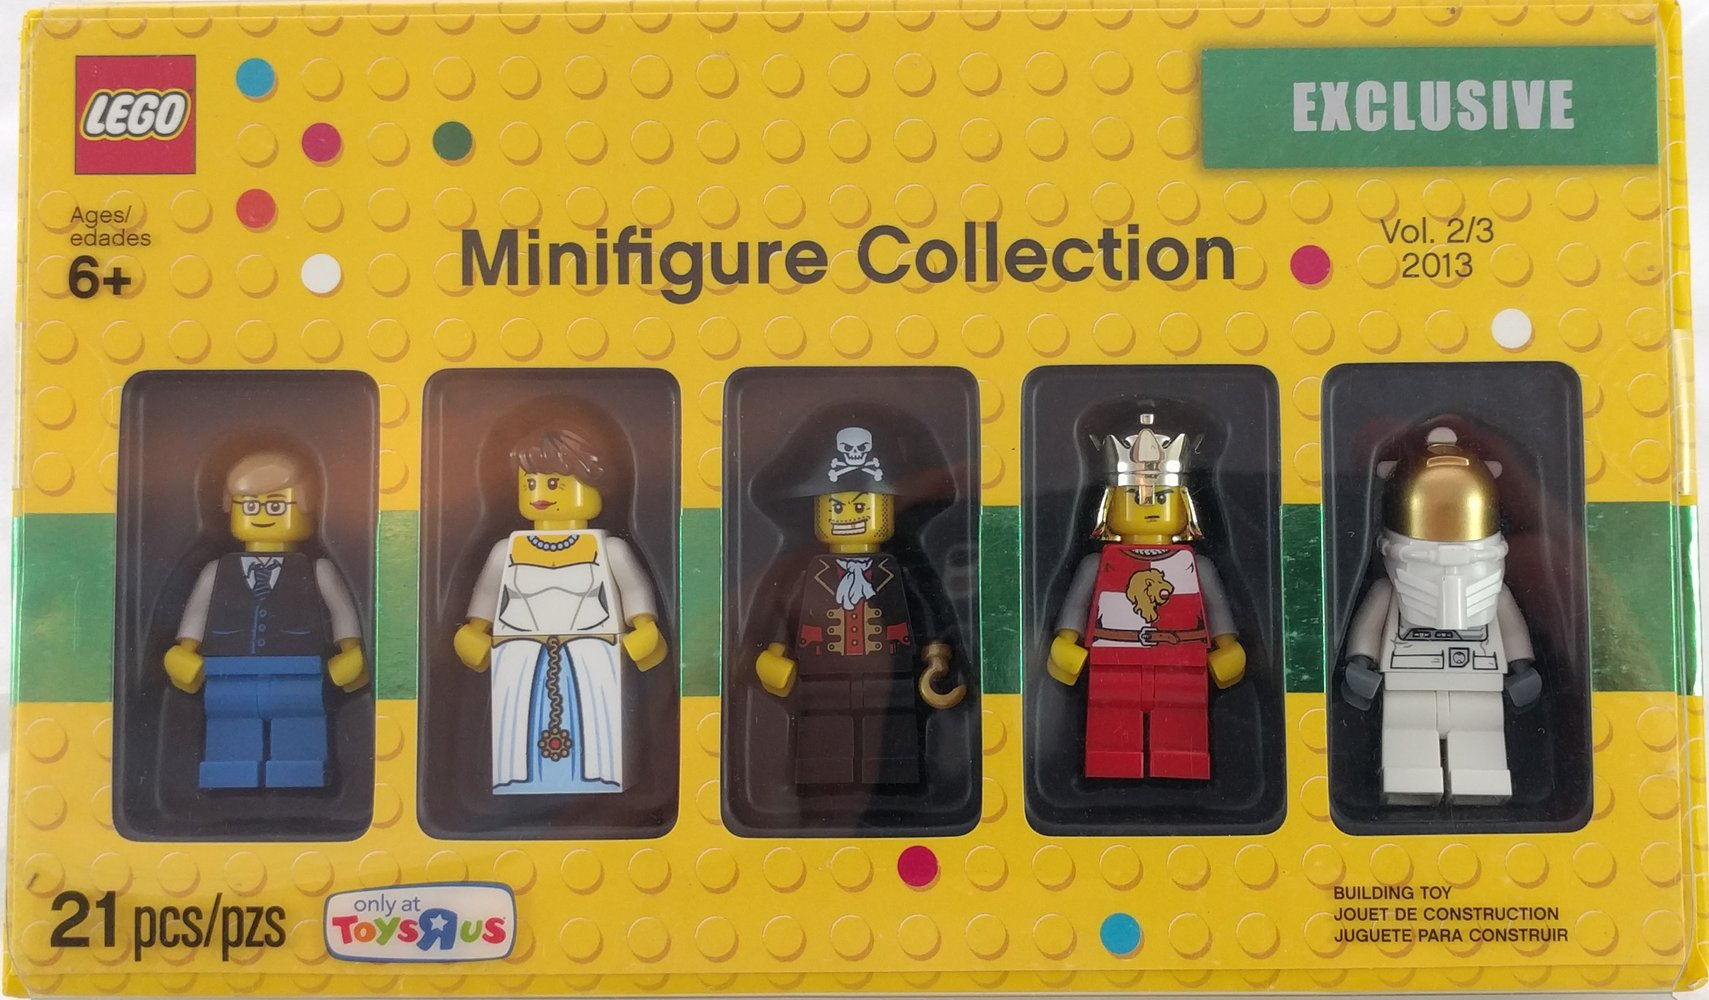 Minifigure Collection 2013 Vol. 2